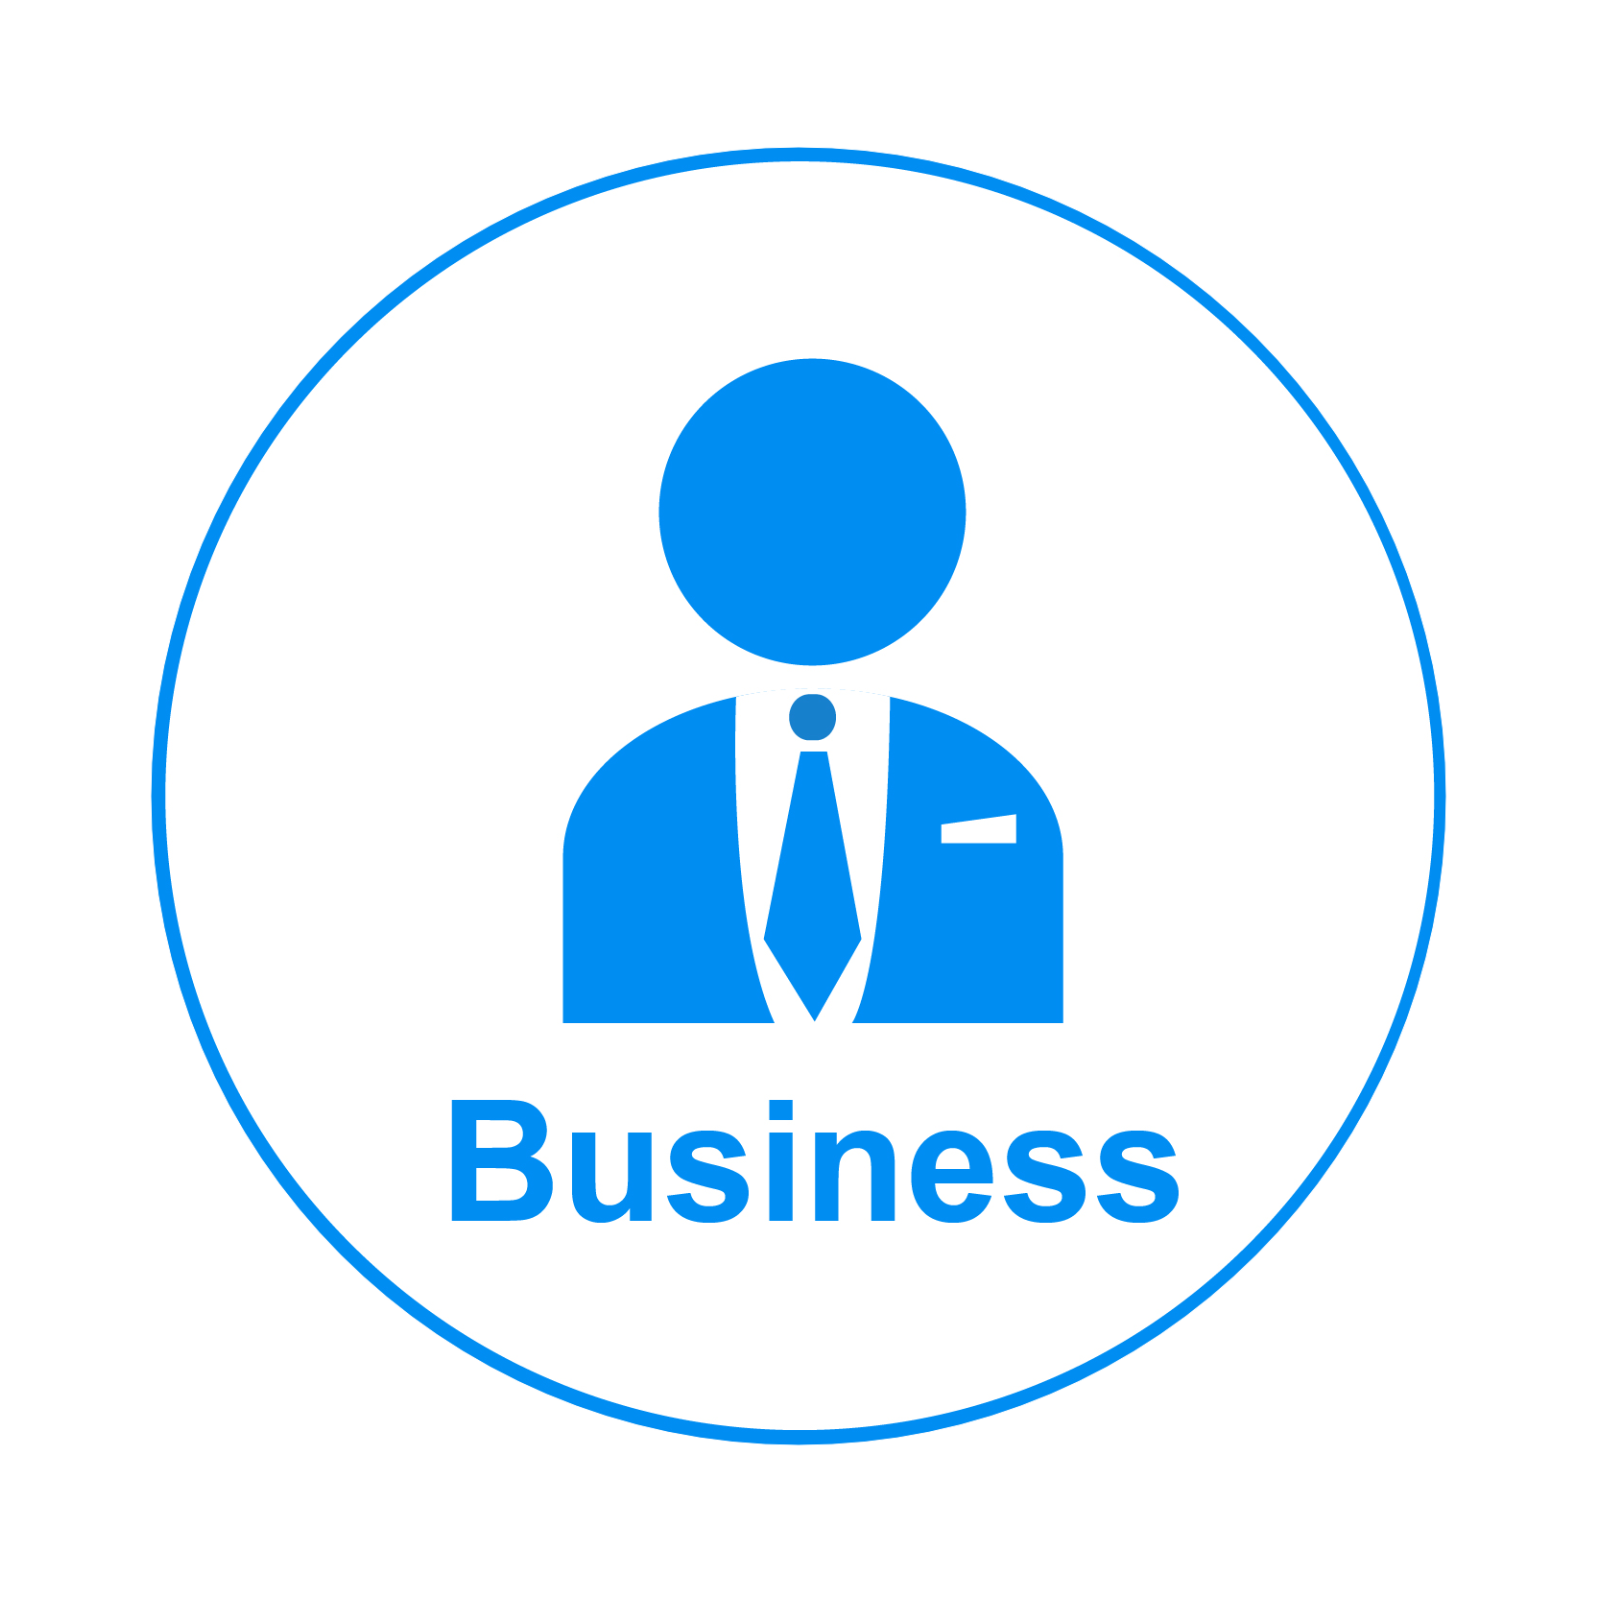 Business course logo